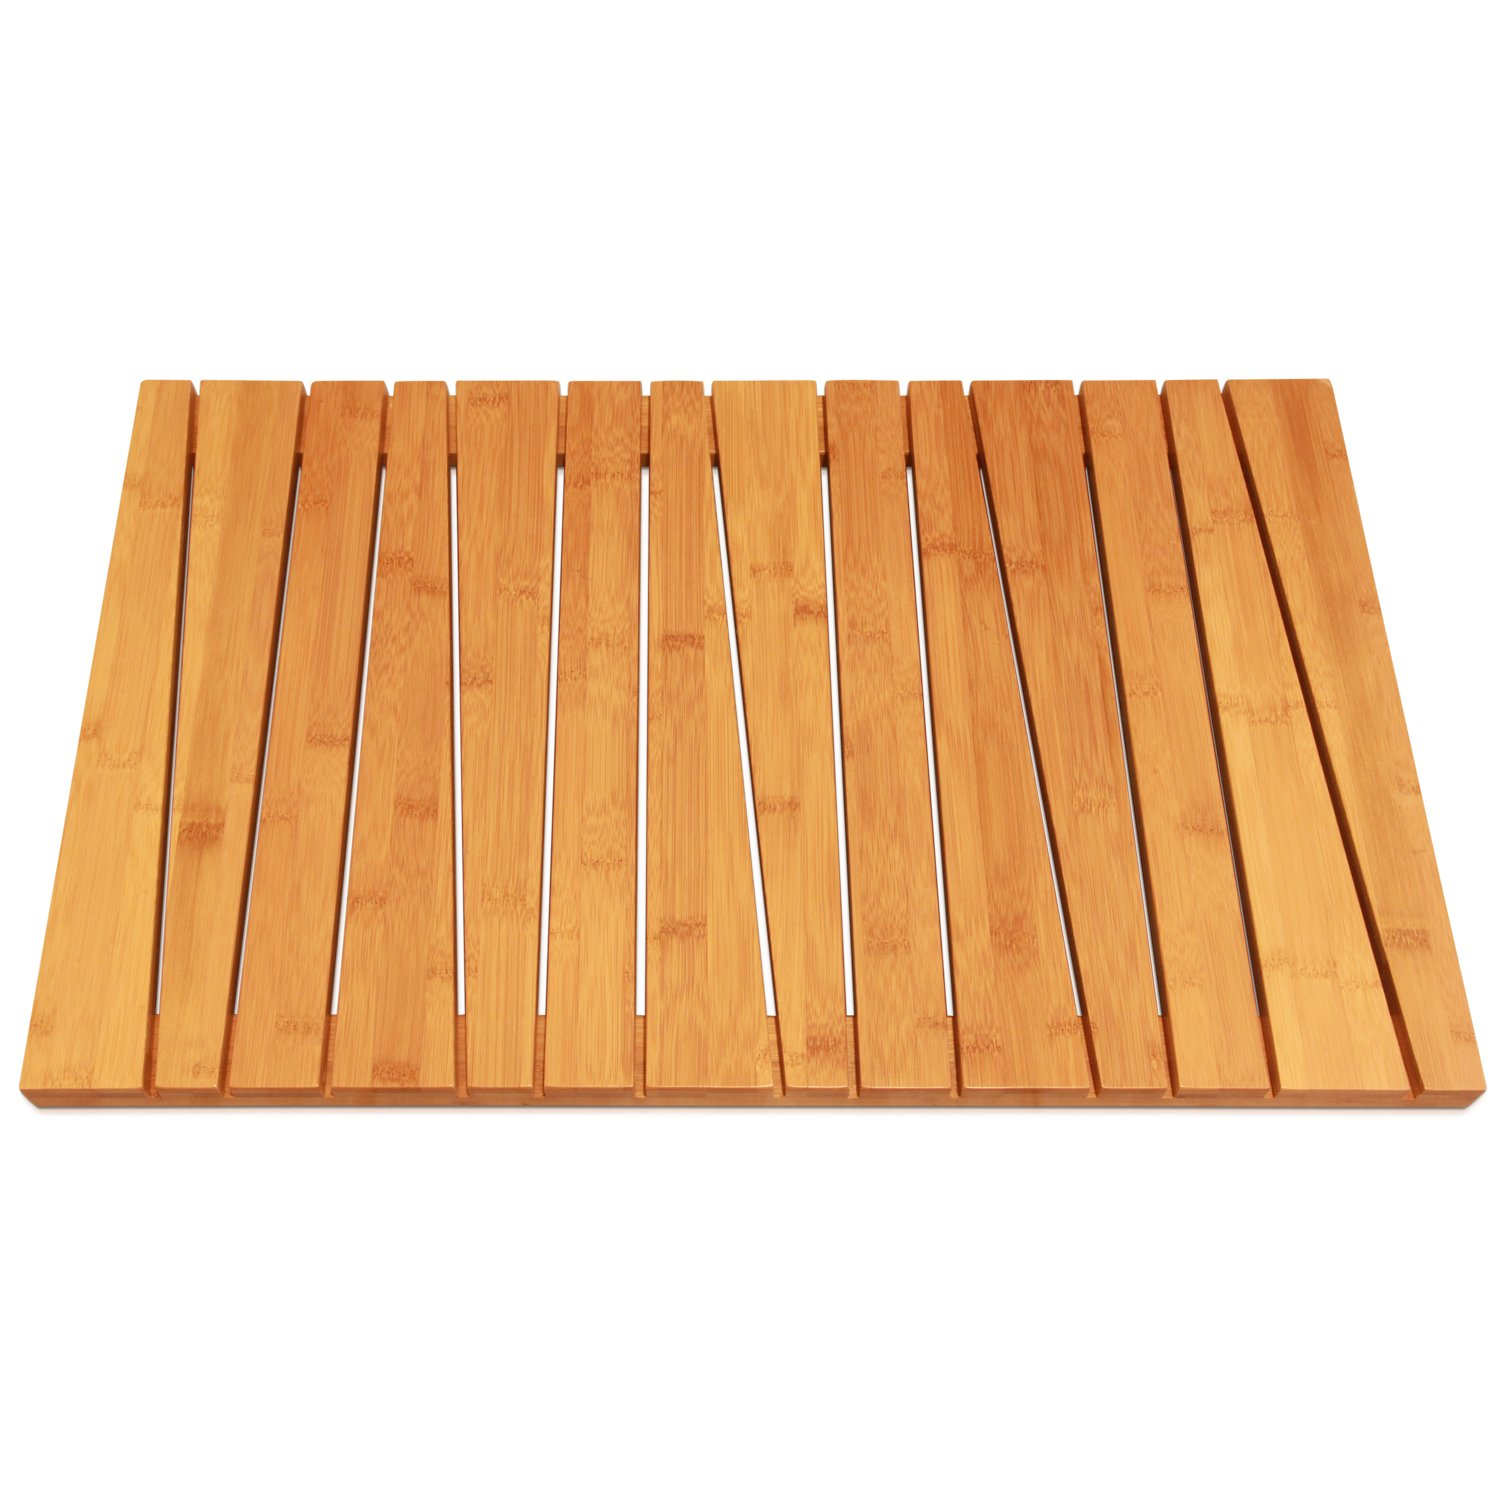 ToiletTree Products 100% Natural Bamboo Deluxe Shower Floor and Bath Mat, Skid Resistant, Heavy-Duty by ToiletTree Products